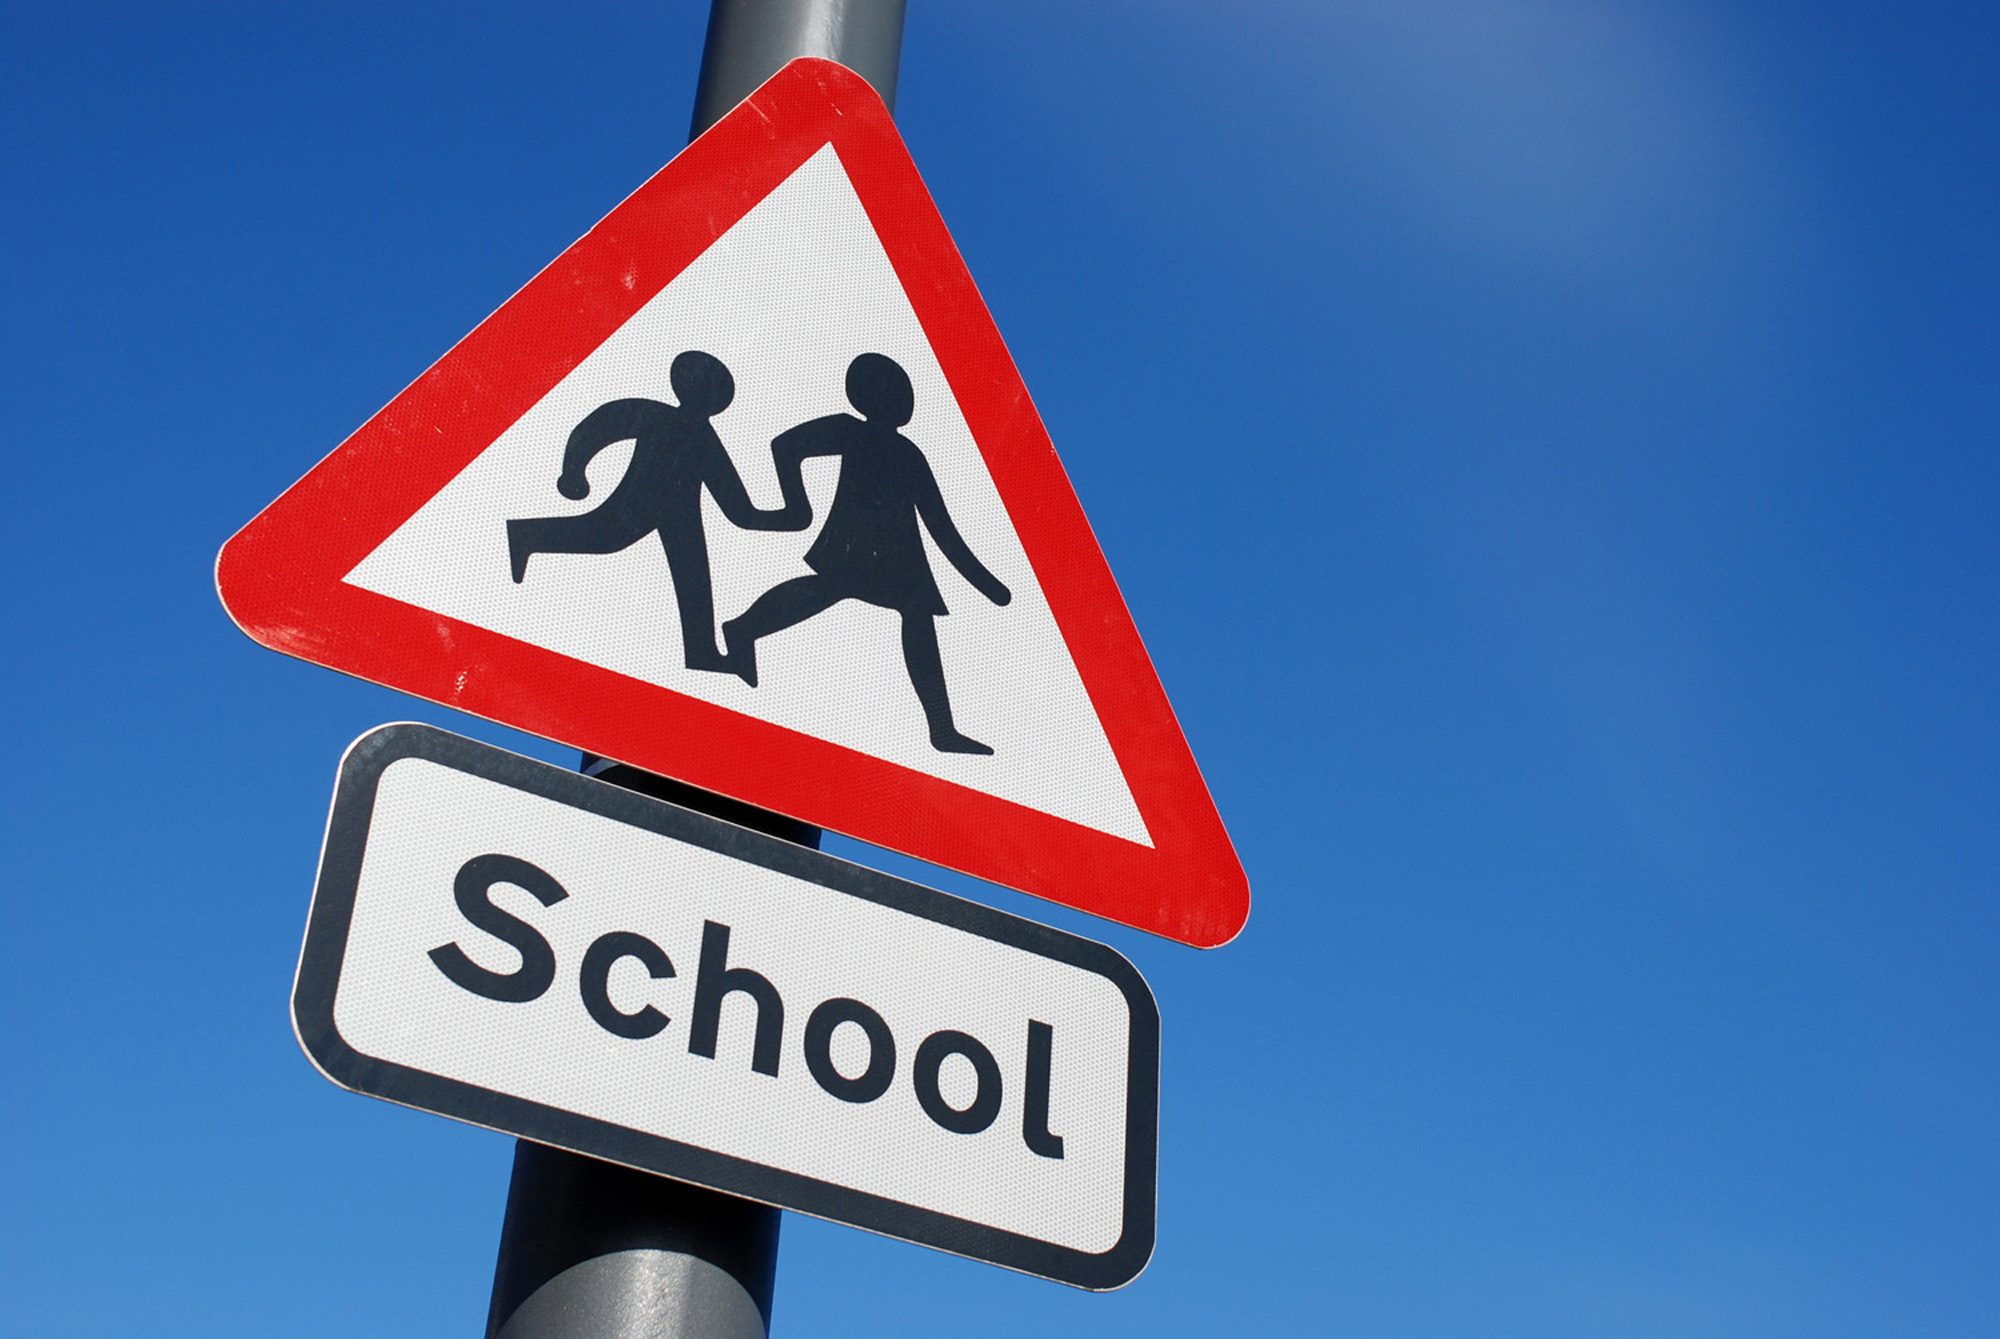 School children crossing sign with copy space.